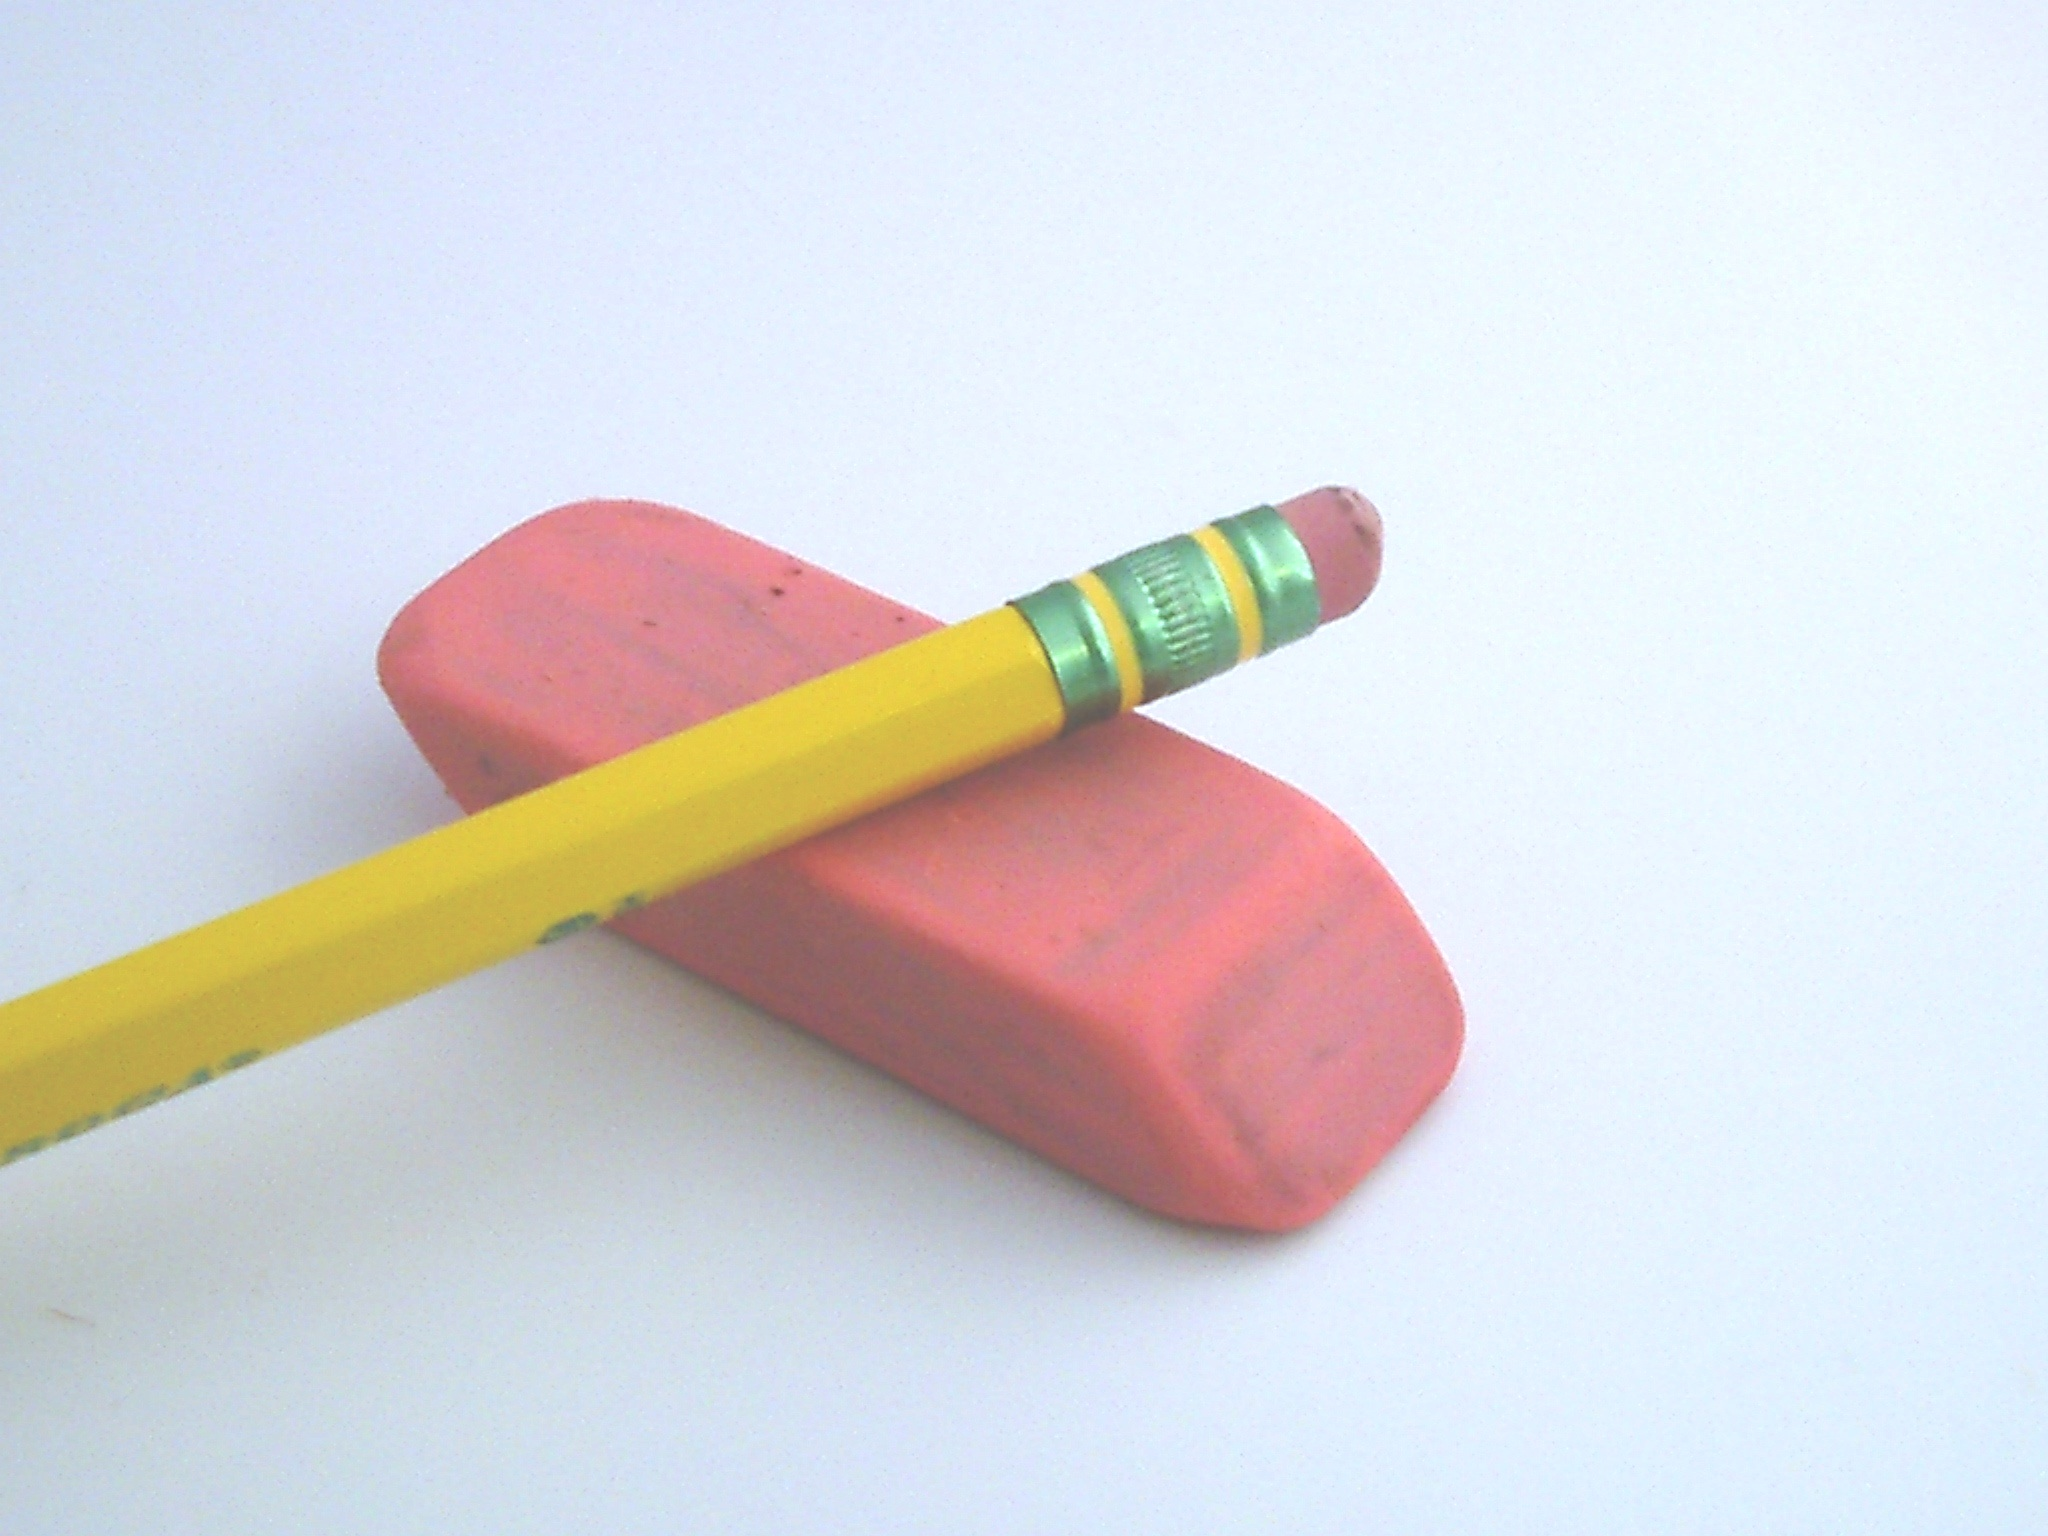 essay on why do pencils have erasers In each child's container you will find: a pencil, an eraser, a handheld sharpener, one box of 24 crayons, and 12 colored pencils everything that they could possibly need for the work that.